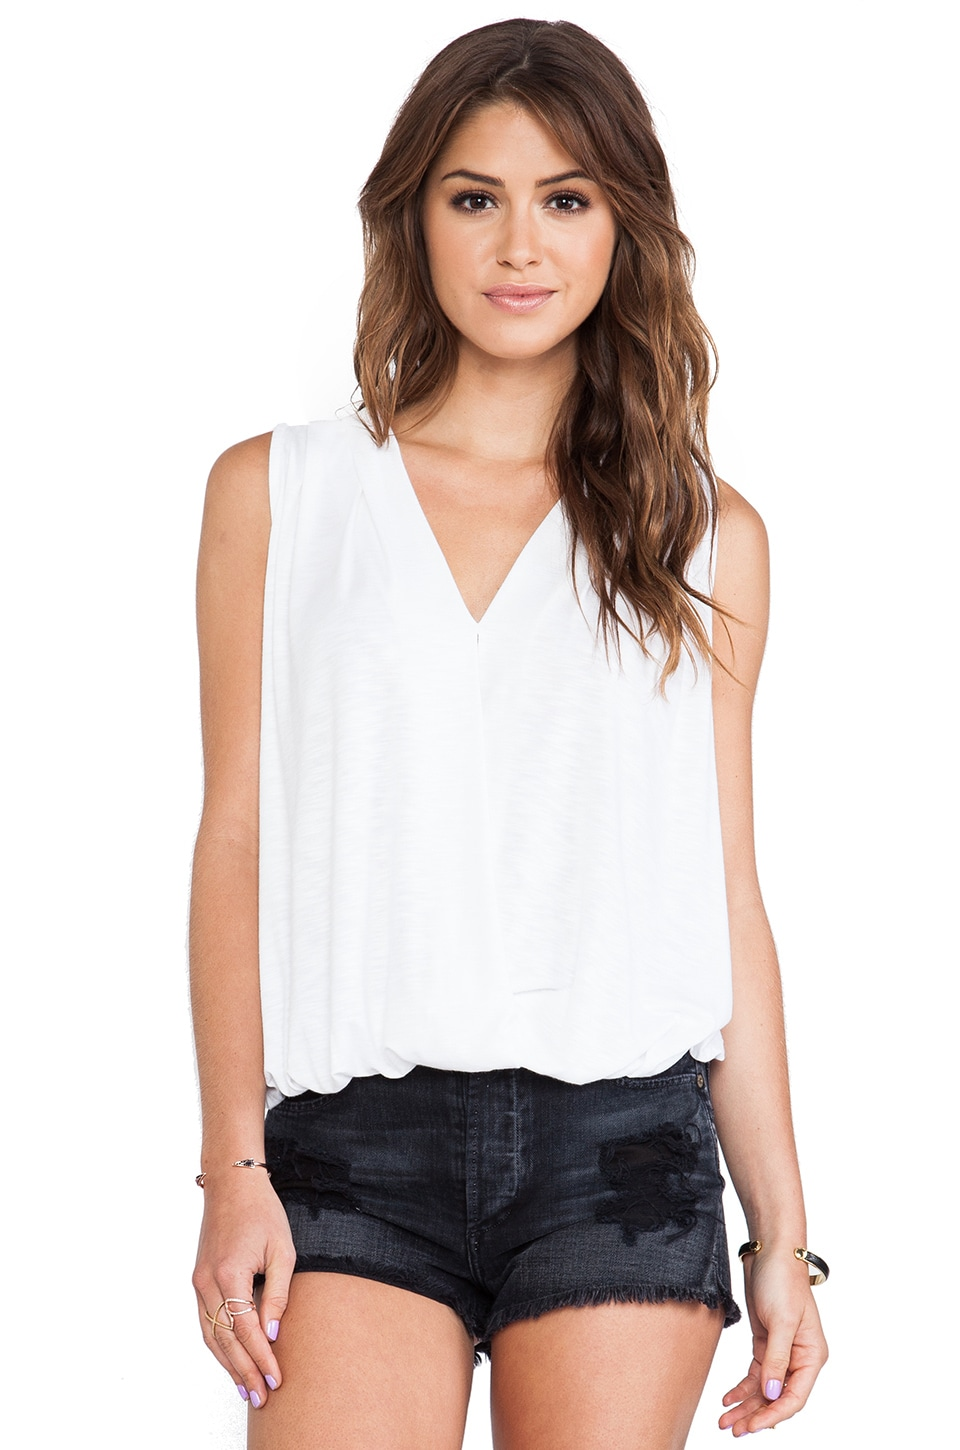 dolan Sleeveless Cross Front Top in Ivory